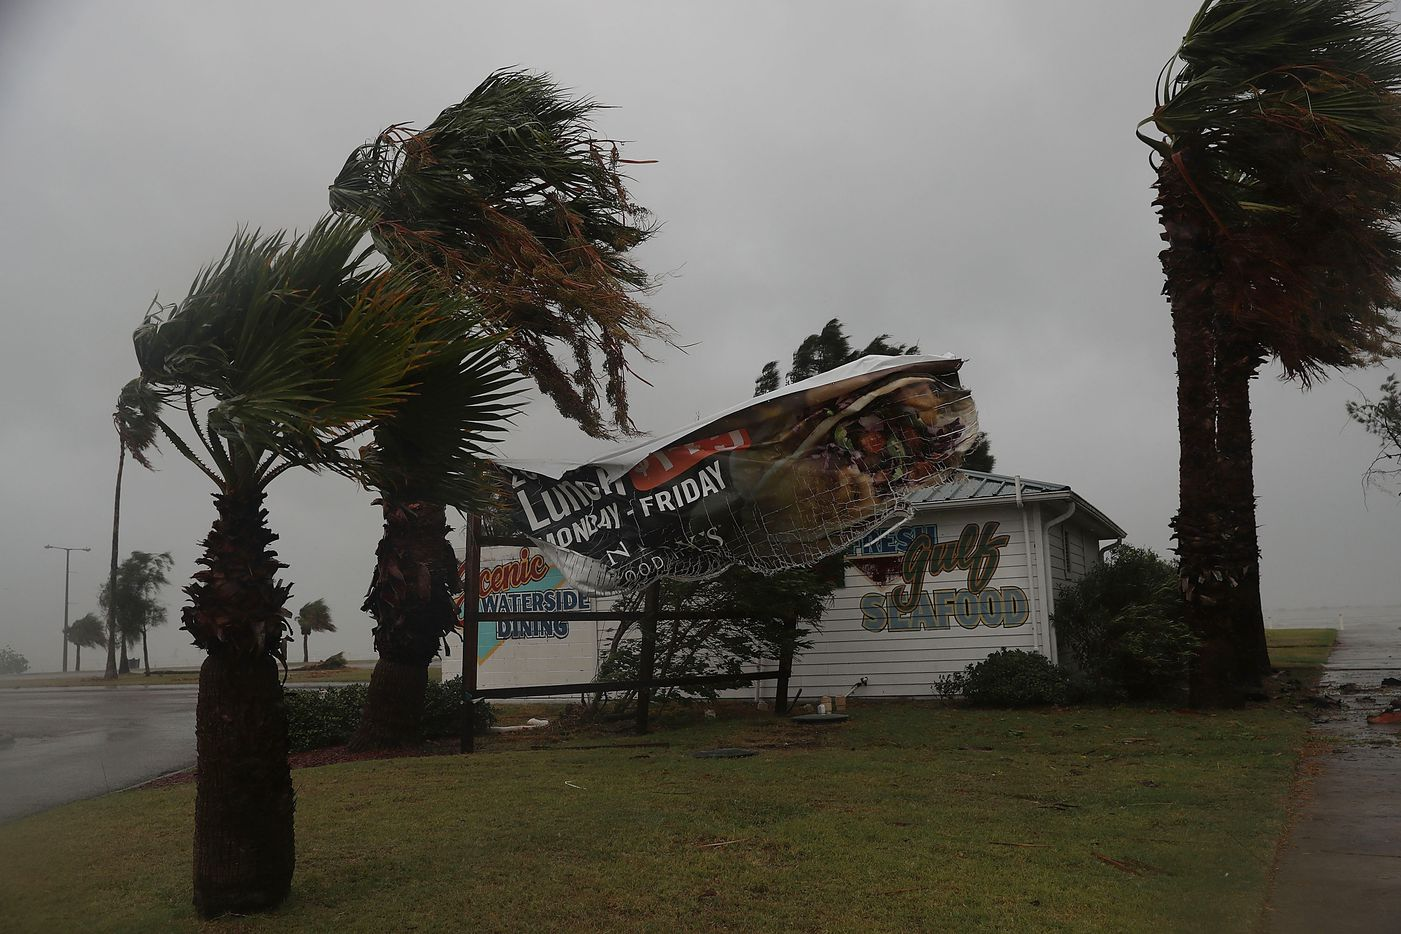 CORPUS CHRISTI, TX - AUGUST 25:  A sign blows in the wind after being partially torn from its frame by winds from Hurricane Harvey on August 25, 2017 in Corpus Christi, Texas.  Hurricane Harvey has intensified into a major hurricane and is aiming for the Texas coast with the potential for up to 3 feet of rain and 125 mph winds.